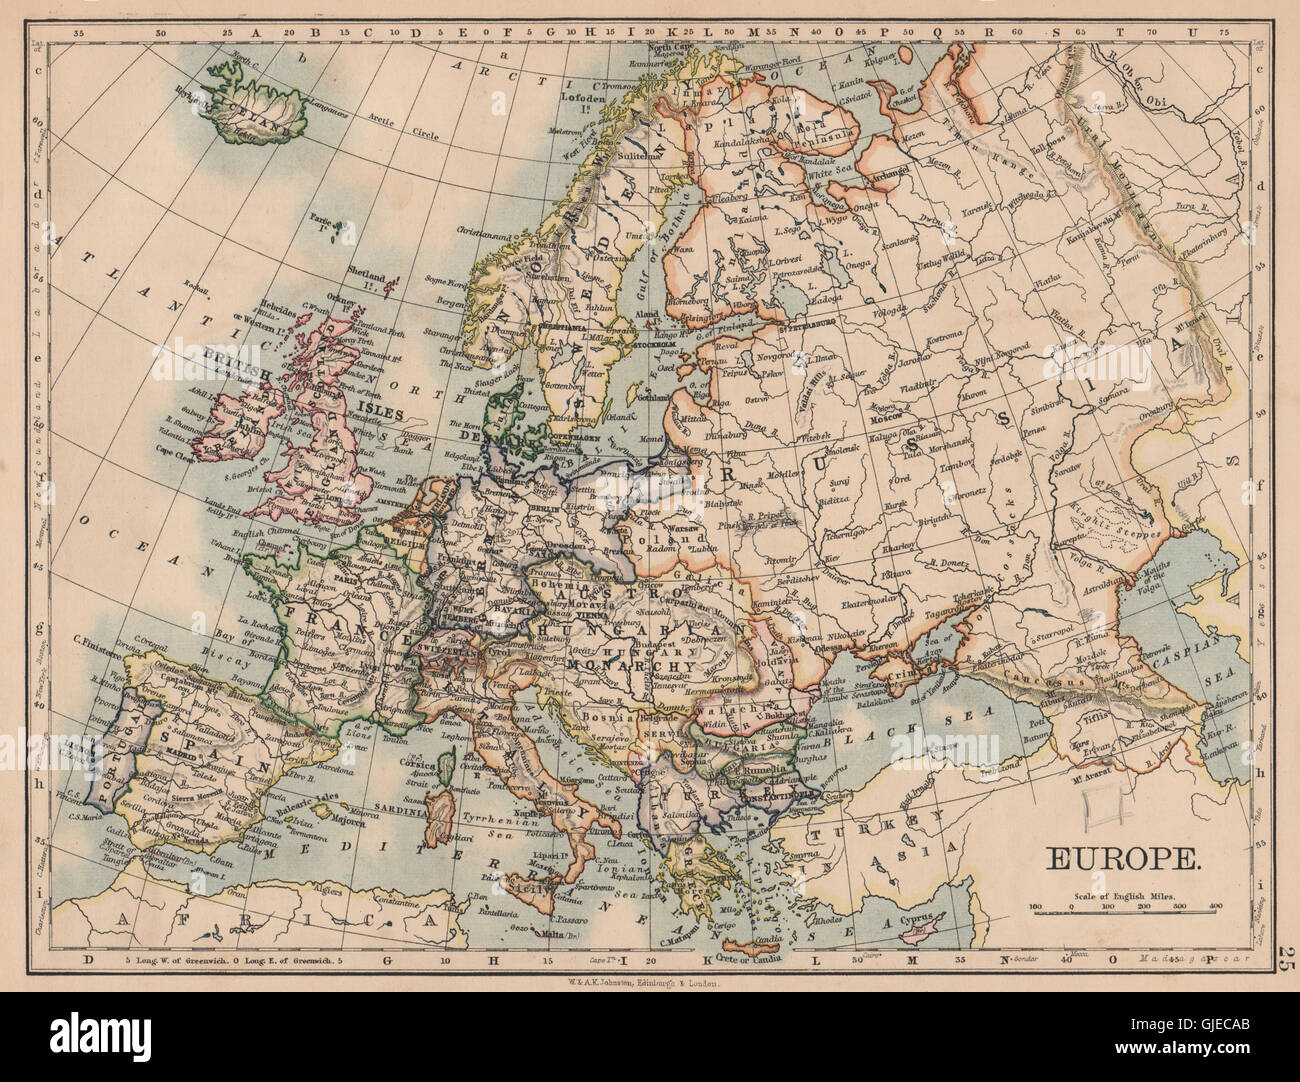 Picture of: Europe Political Austria Hungary United Sweden Norway Johnston Stock Photo Alamy